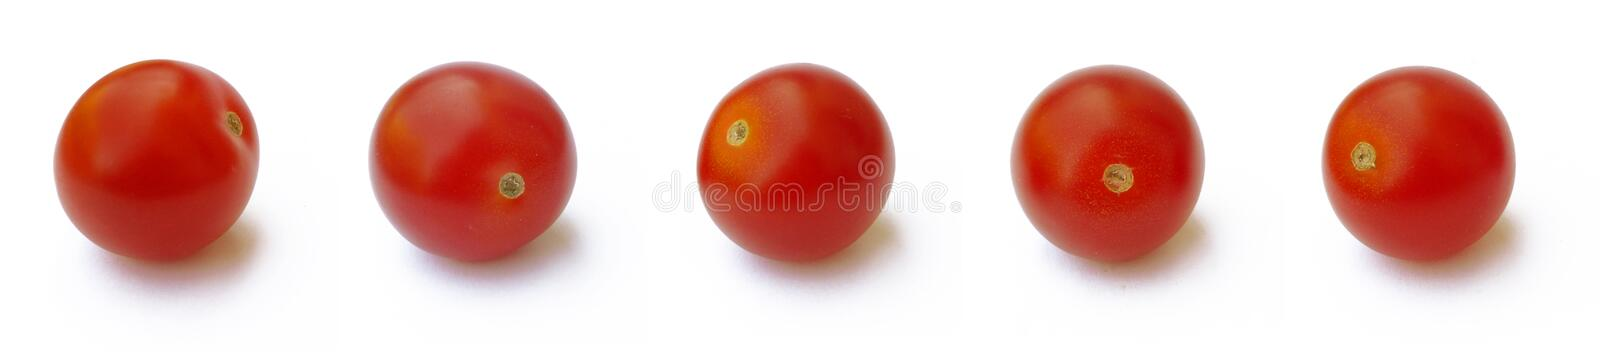 5 Tomatoes royalty free stock photography